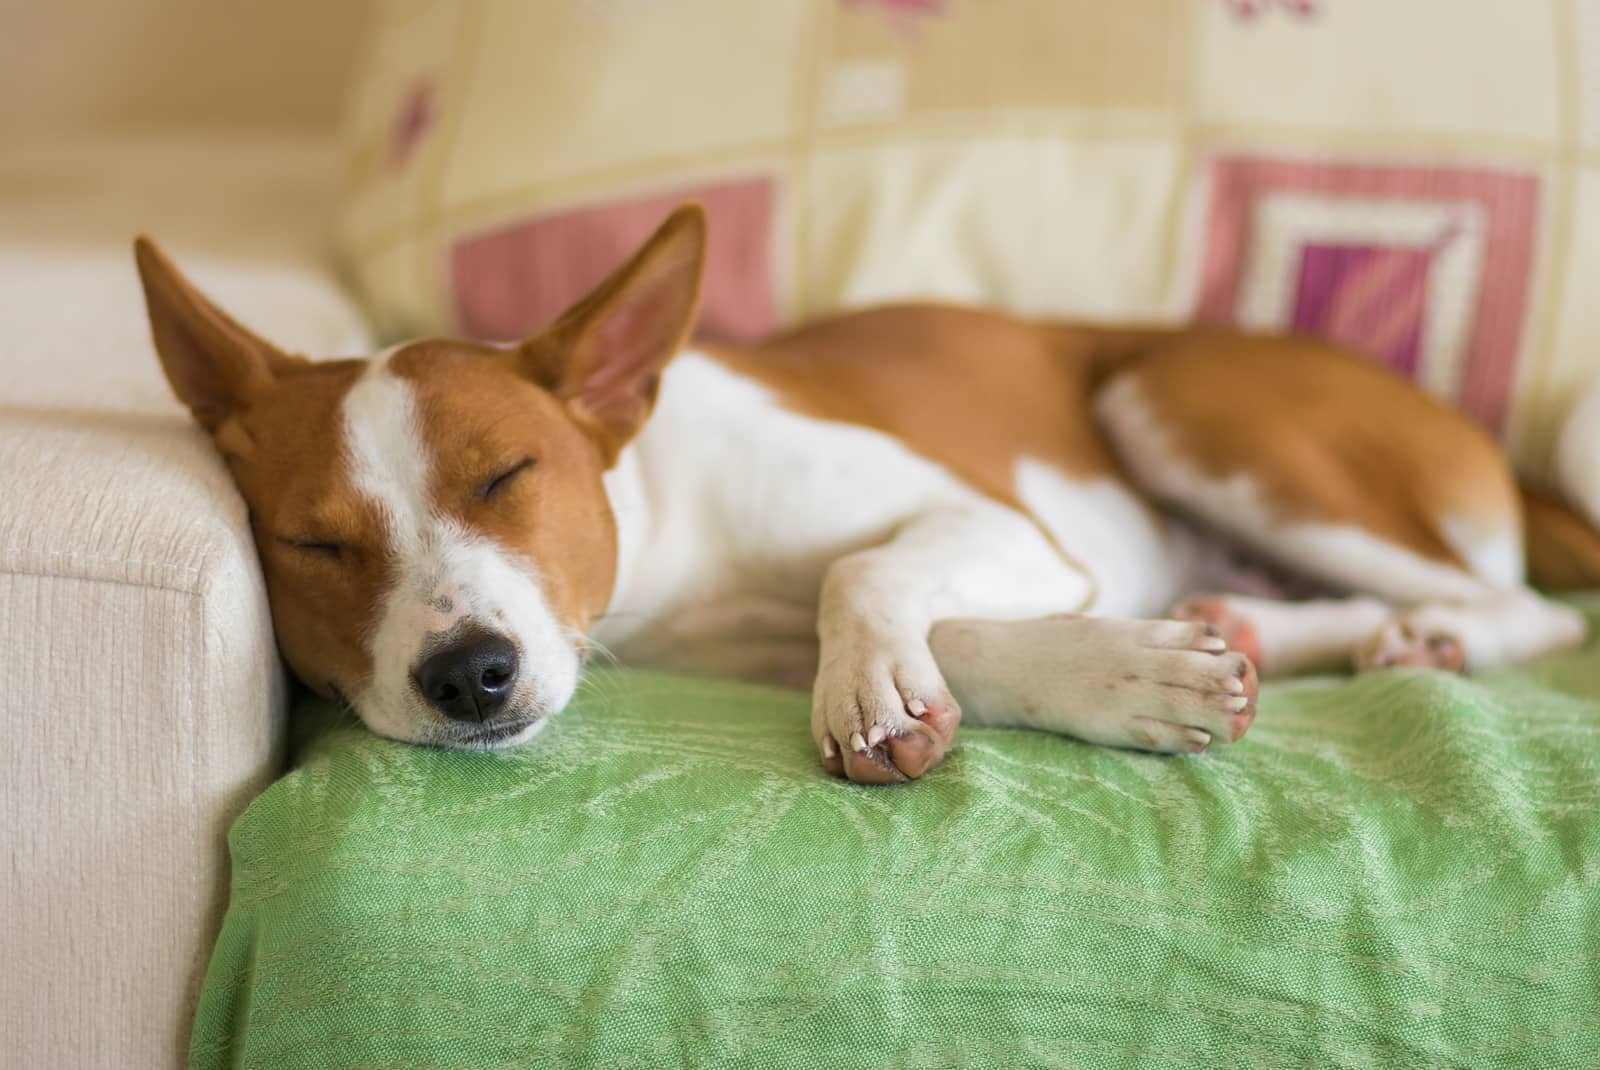 Young Basenji dog sleeping on a sofa covered in a green blanket